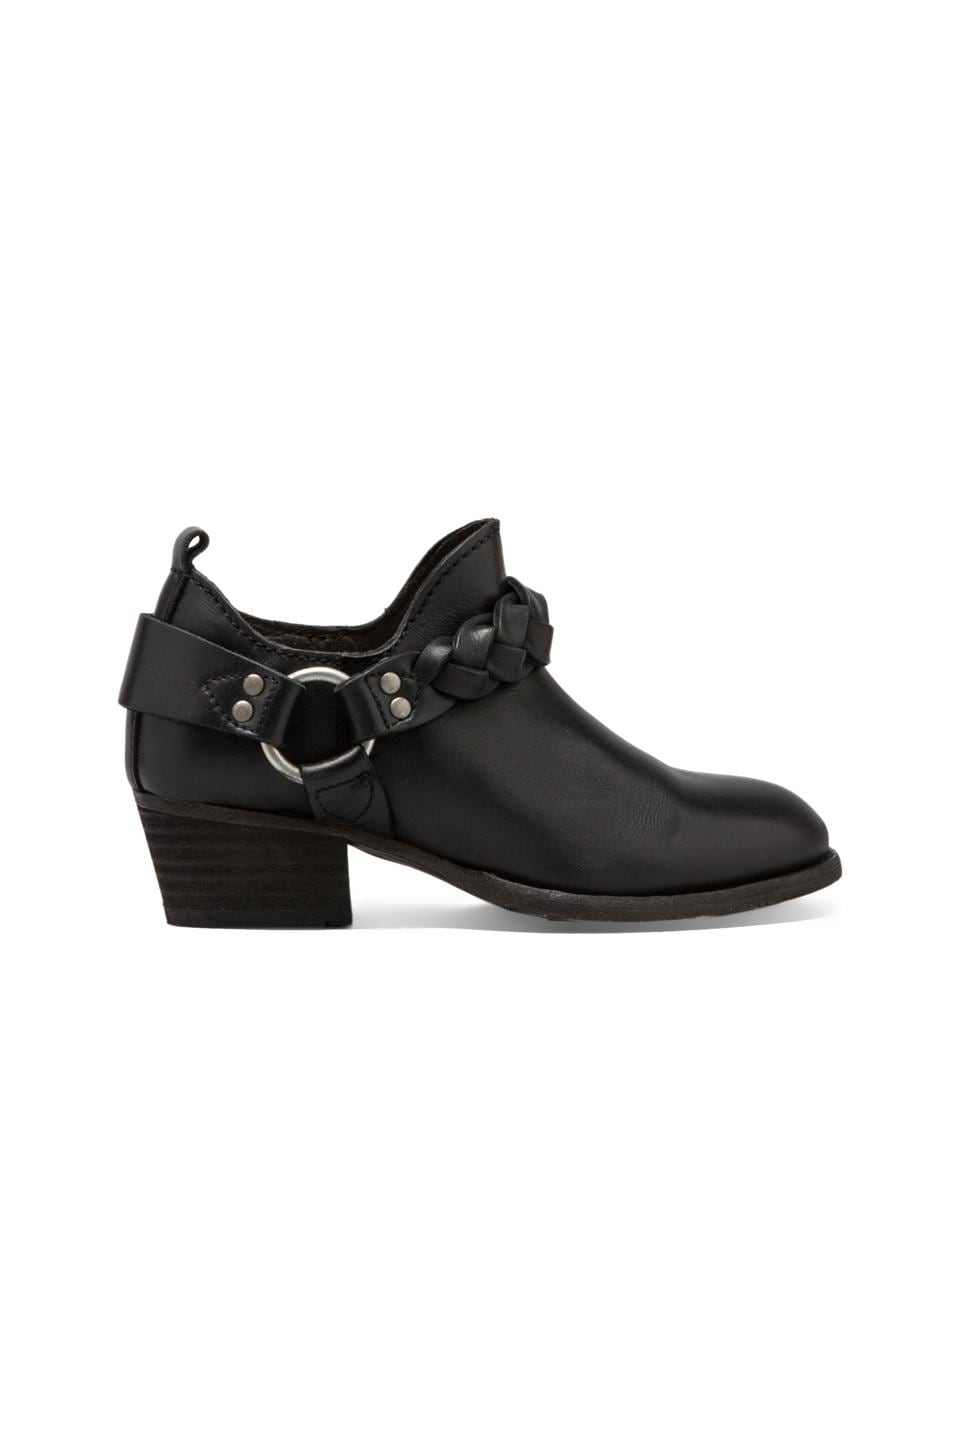 H by Hudson Levy Bootie in Black